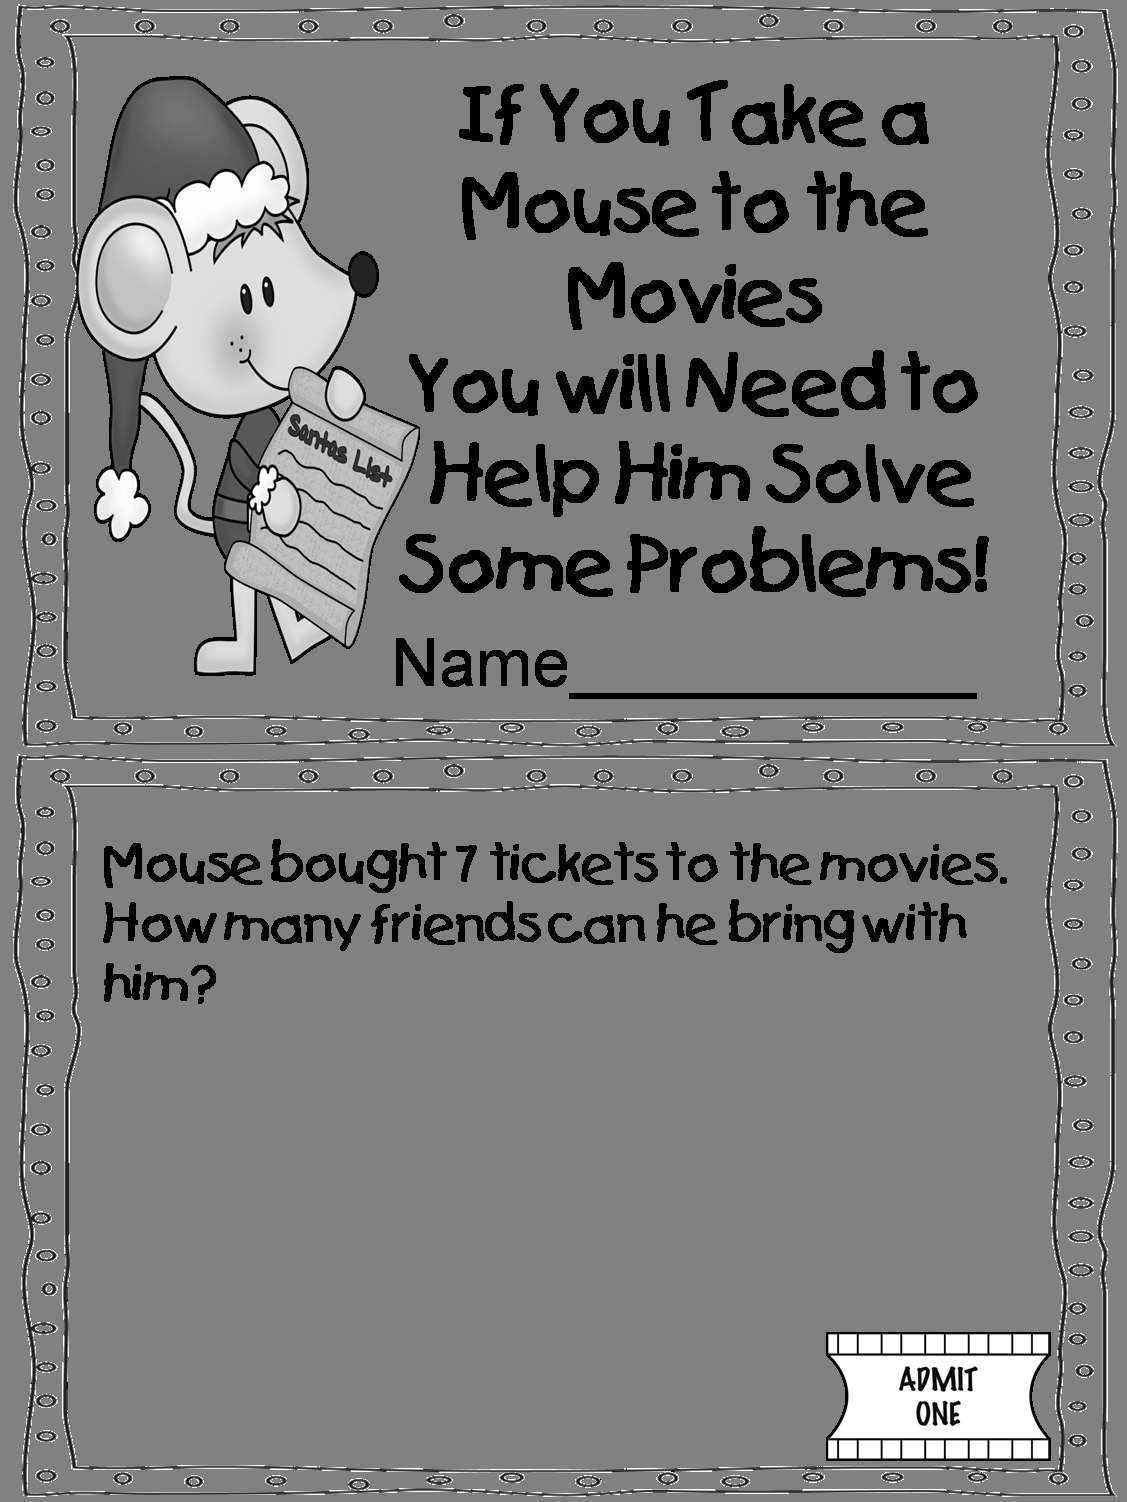 If You Take A Mouse to the Movies Coloring Page if You Take A Mouse to the Movies Coloring Page Coloring